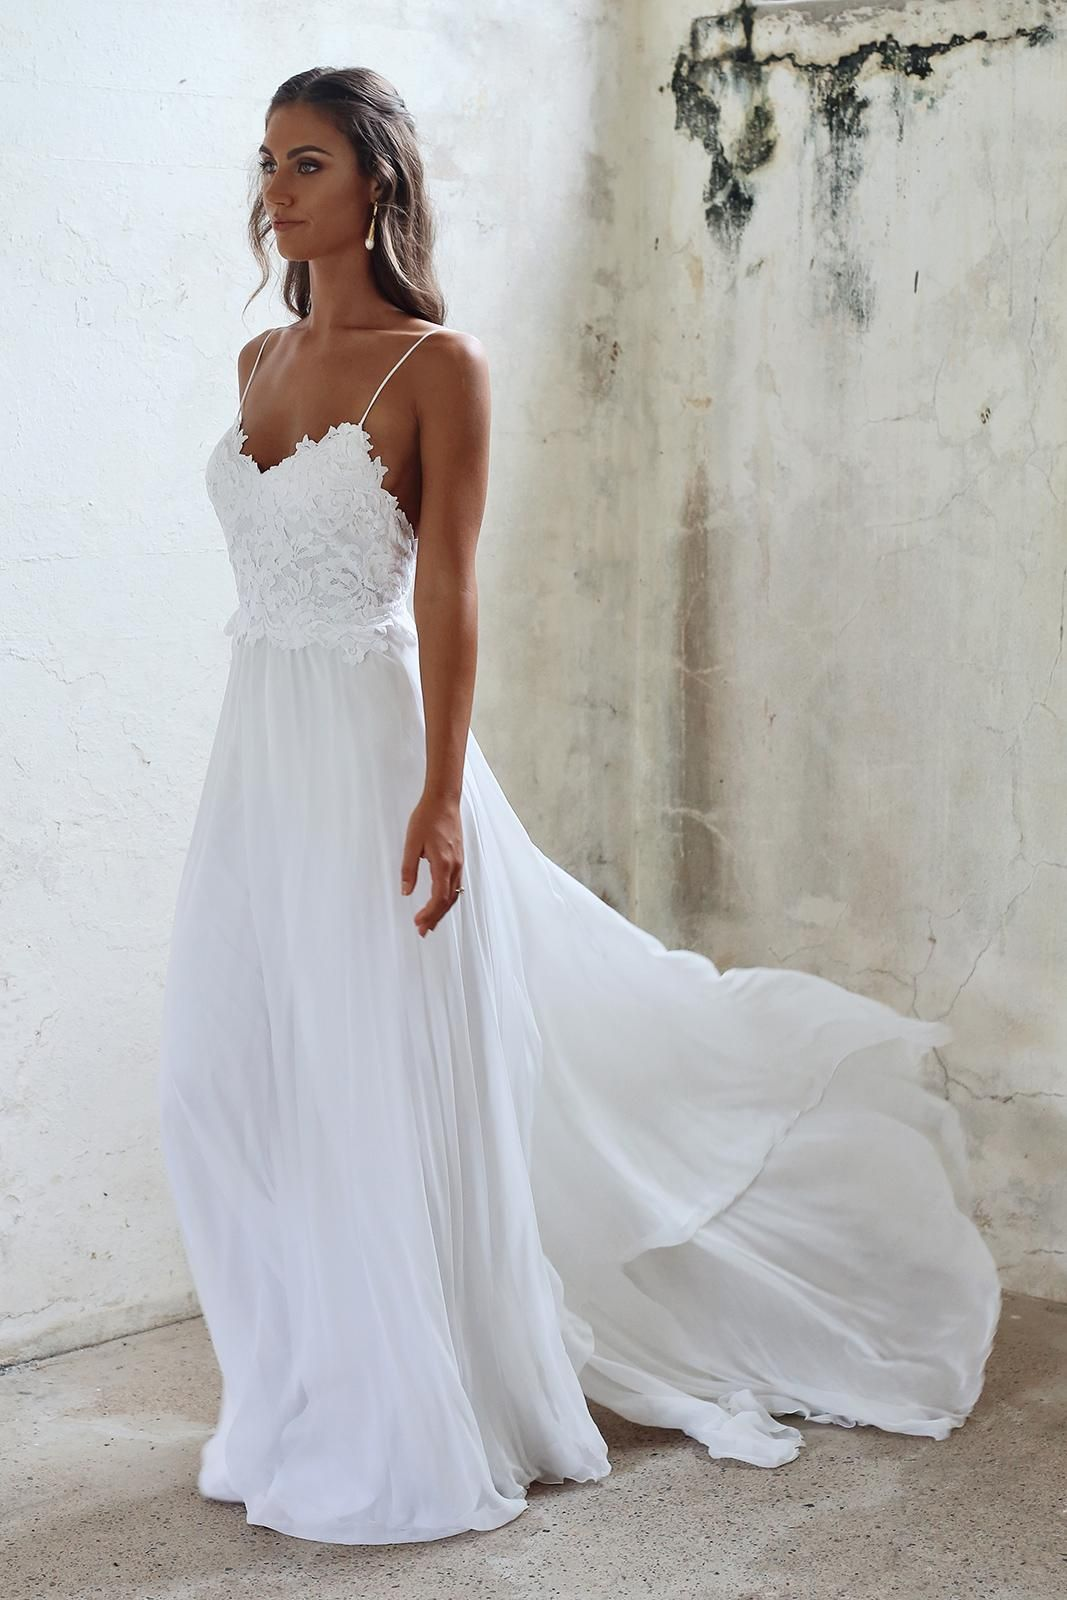 Wedding Dresses, Wedding Gowns, White